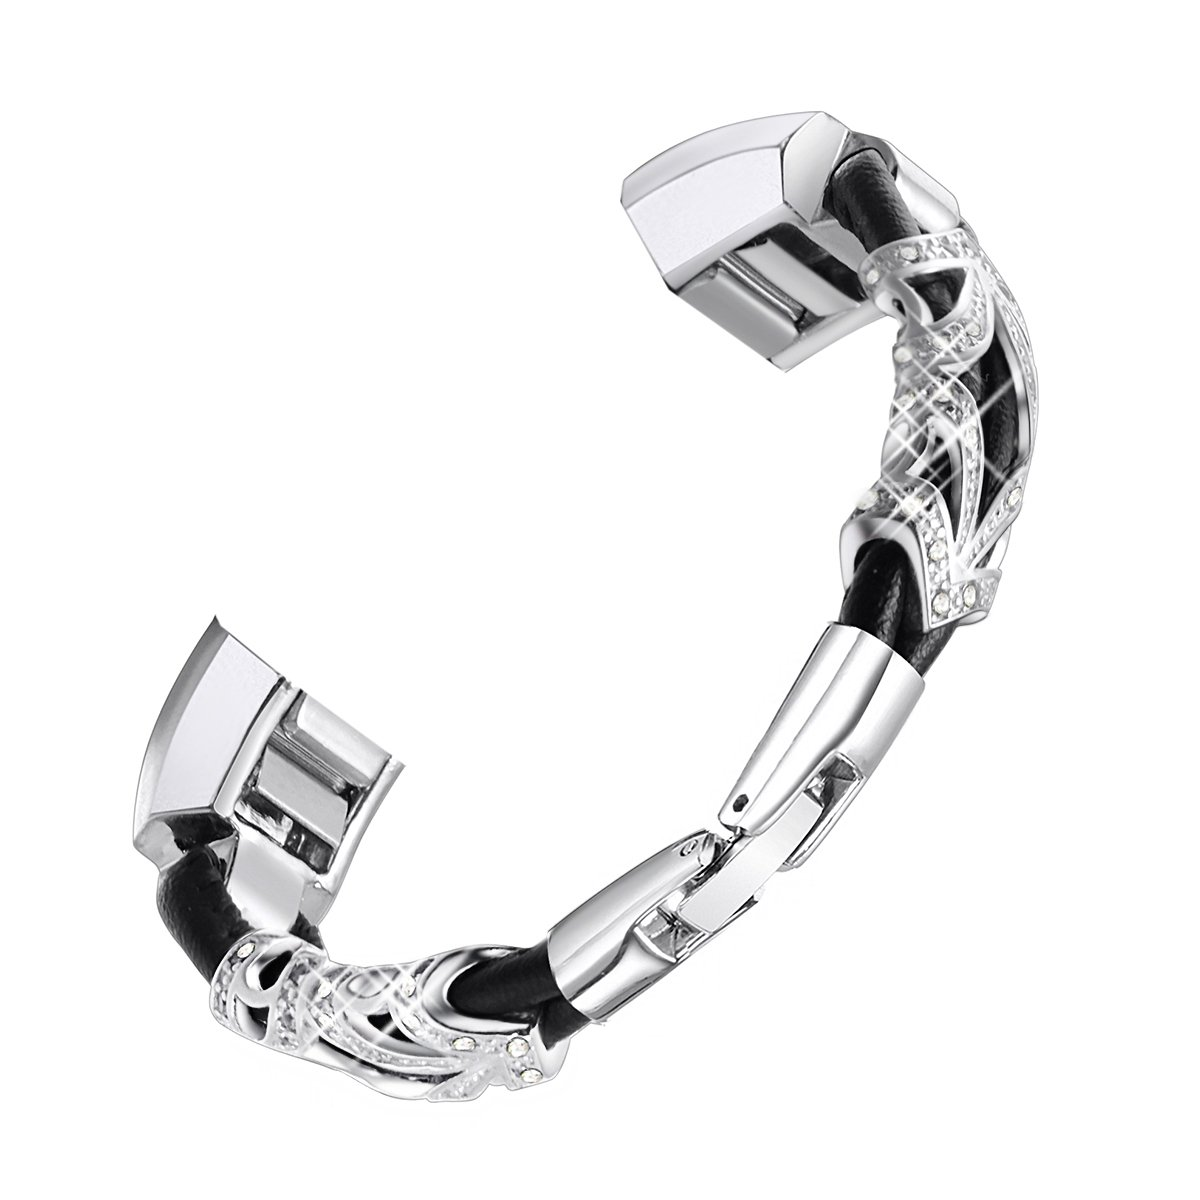 bayite Leather Bands Compatible with Fitbit Alta and Alta HR, Metal Clasp Leather Cord Wristband with Rhinestone Bling, (Silver with Rhinestone, 5.5'' - 6.7'')